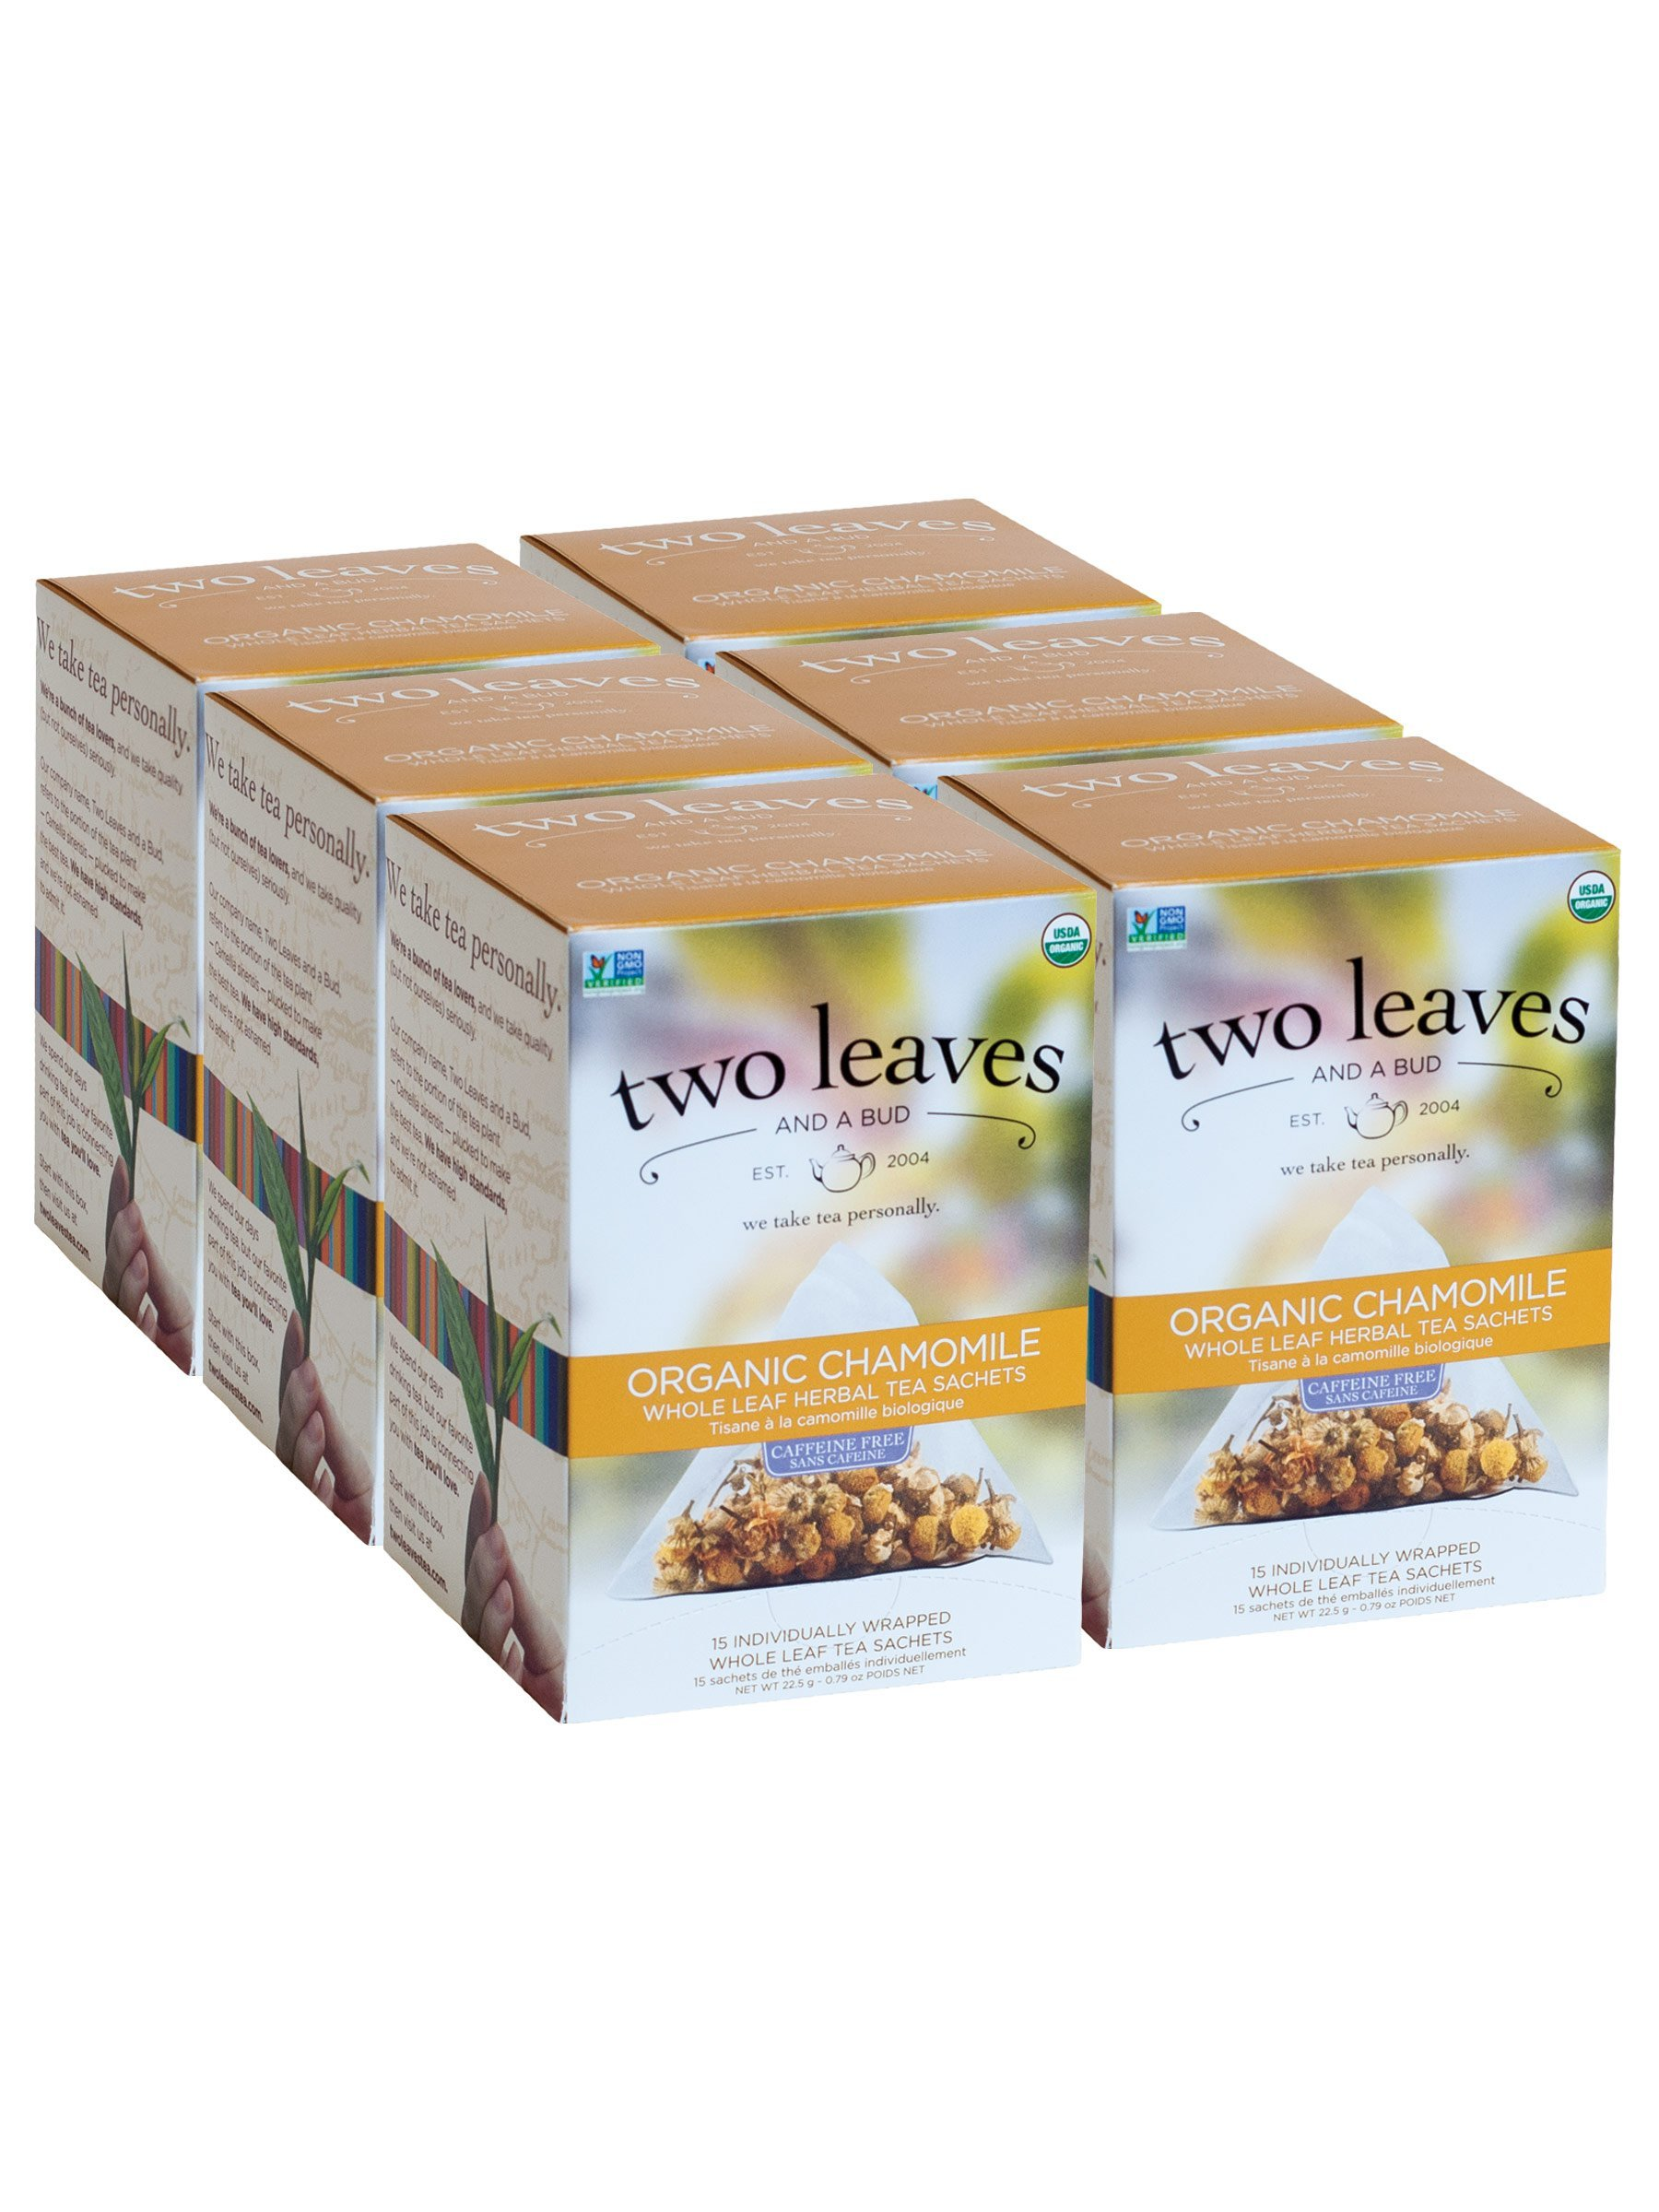 Two Leaves and a Bud Organic Chamomile Herbal Tea Bags, 15 Count (Pack of 6) Organic Whole Leaf Caffeine Free Herbal Tea in Sachet Bags, Delicious Hot or Iced with Sugar or Honey or Plain